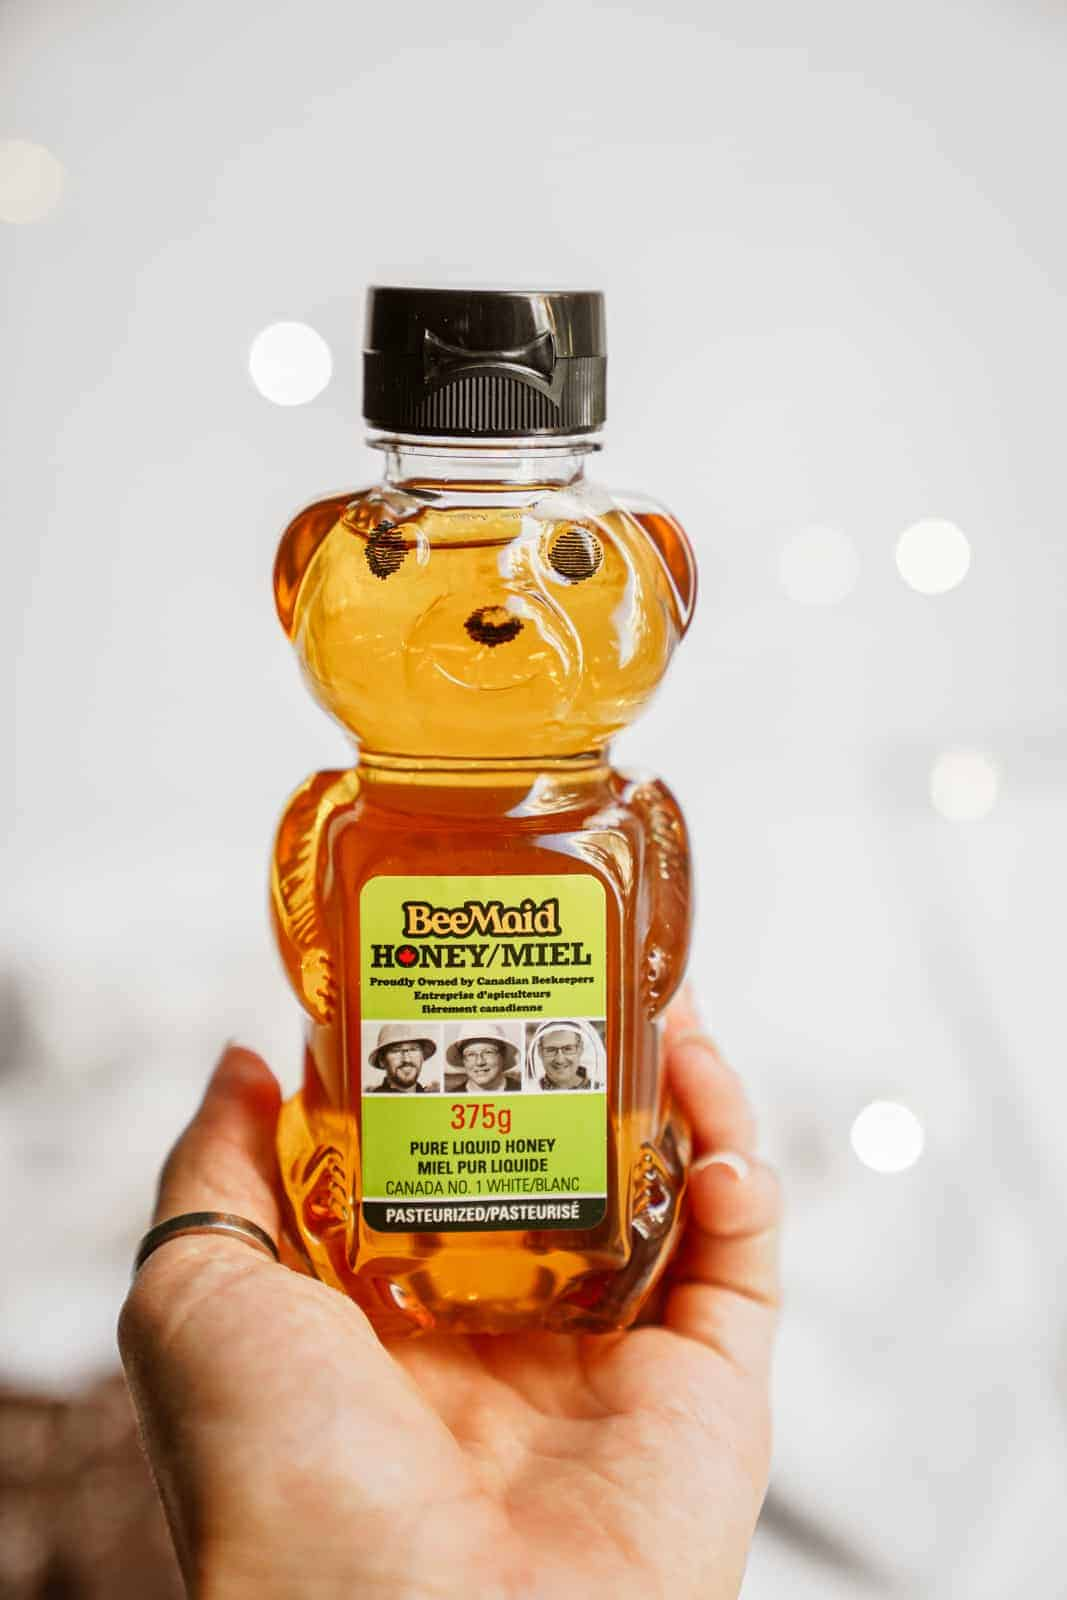 Hand holding a Beemaid honey container.